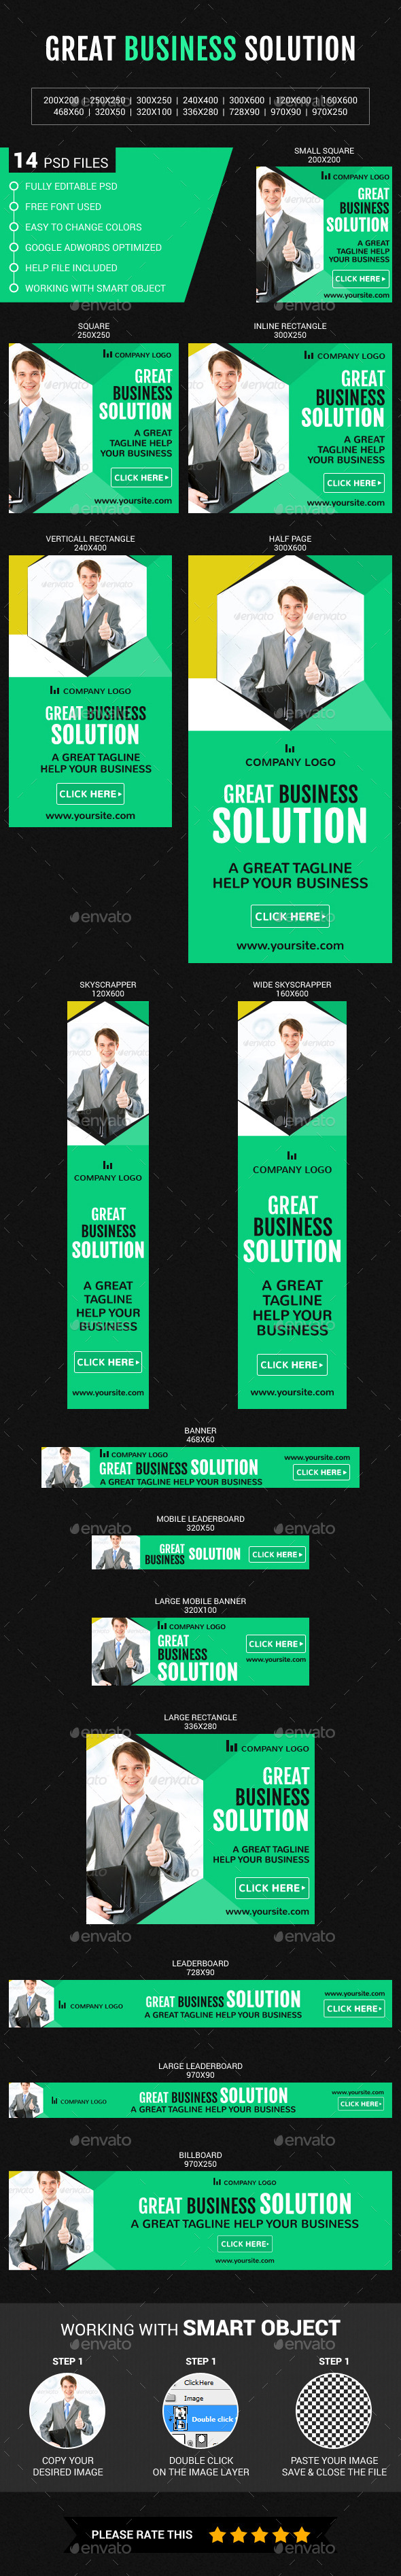 GraphicRiver Great Business Solution 11957228